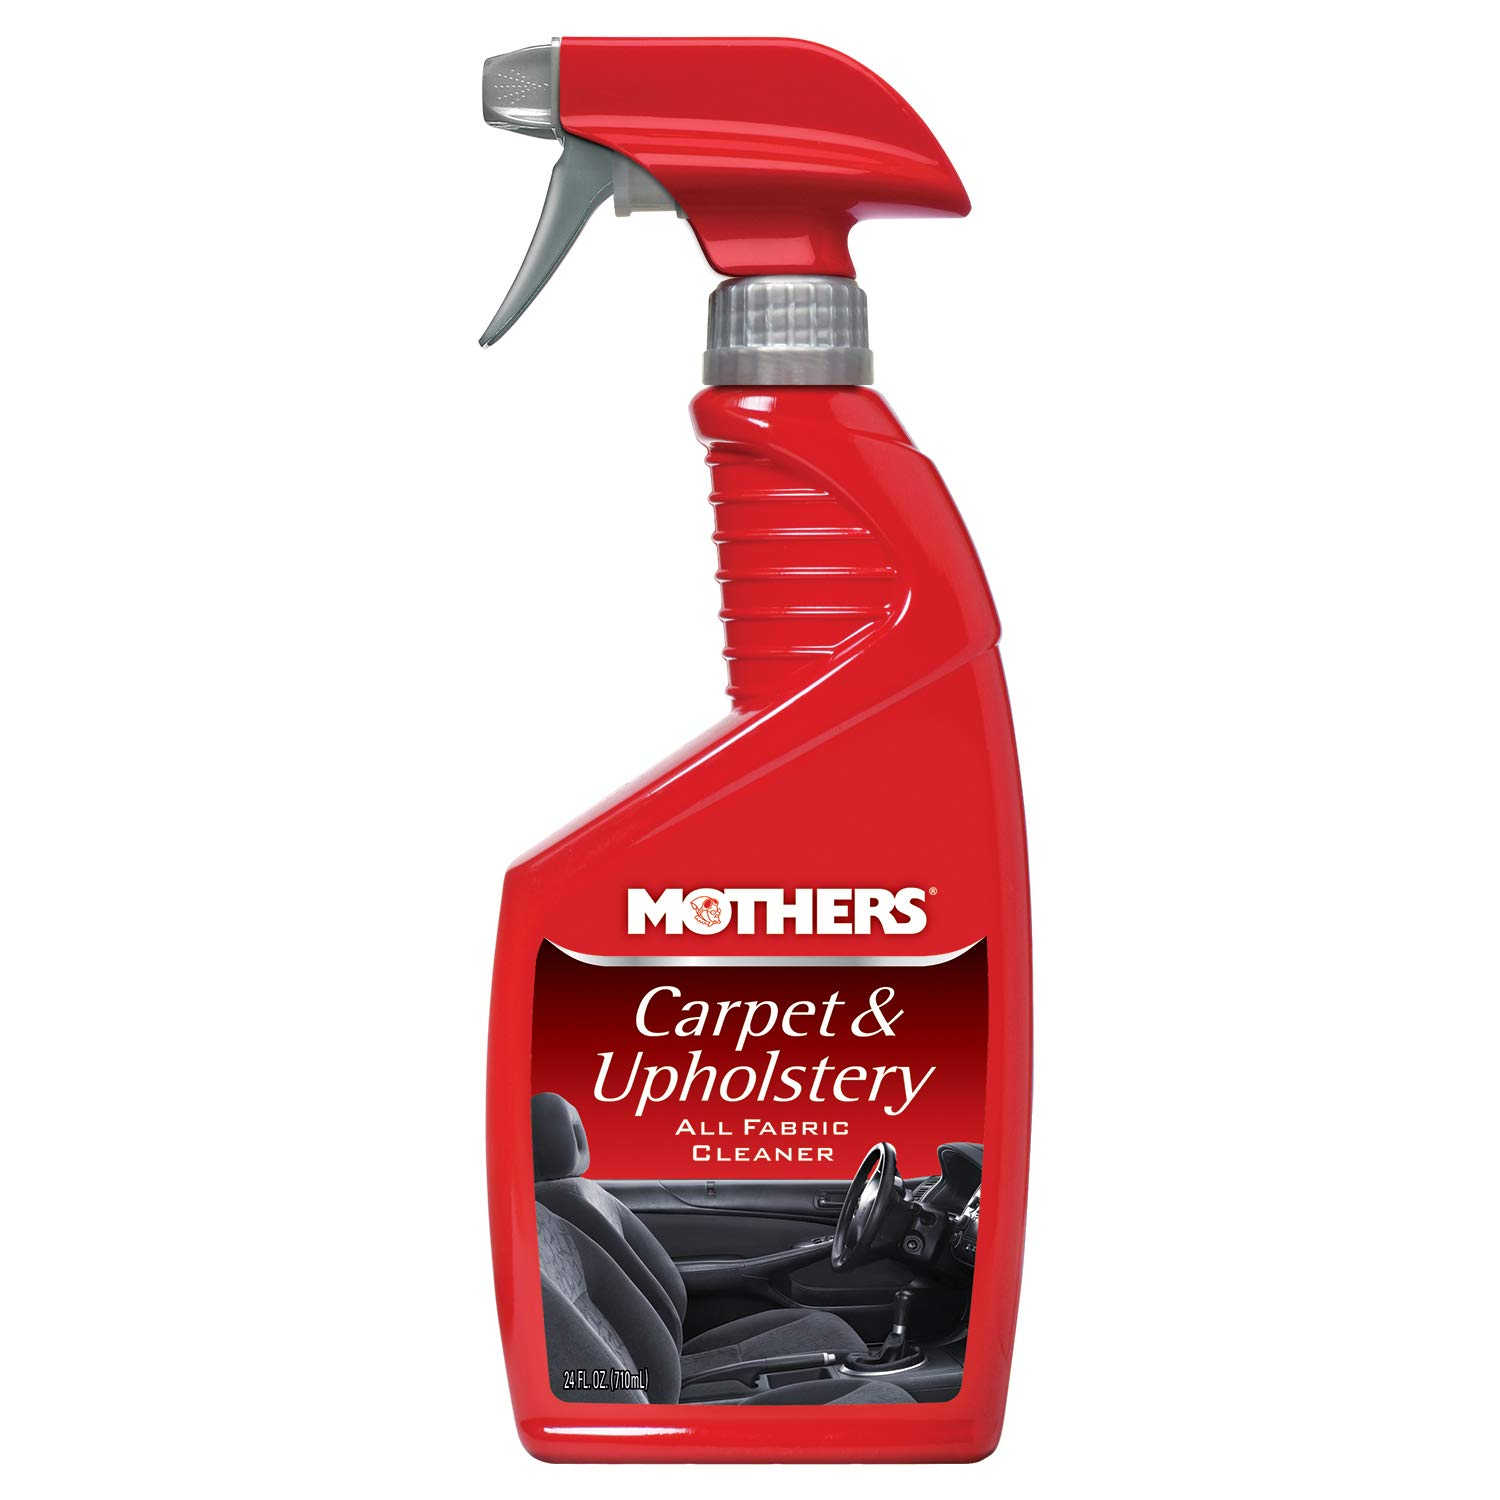 Mothers 05424-6 Carpet & Upholstery Cleaner - 24 oz, (Pack of 6)